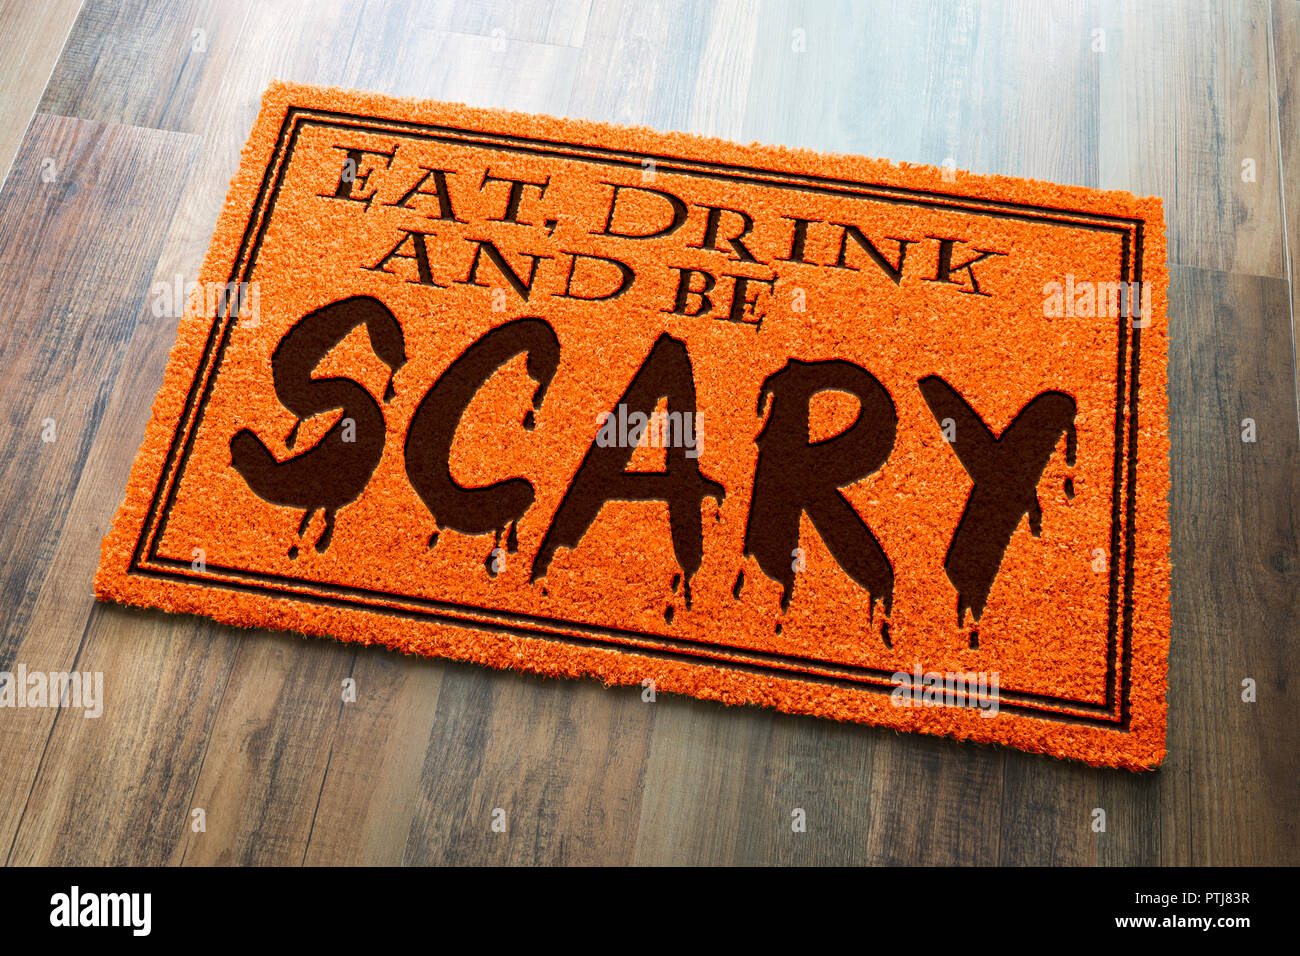 door mats stock photos & door mats stock images - page 2 - alamy